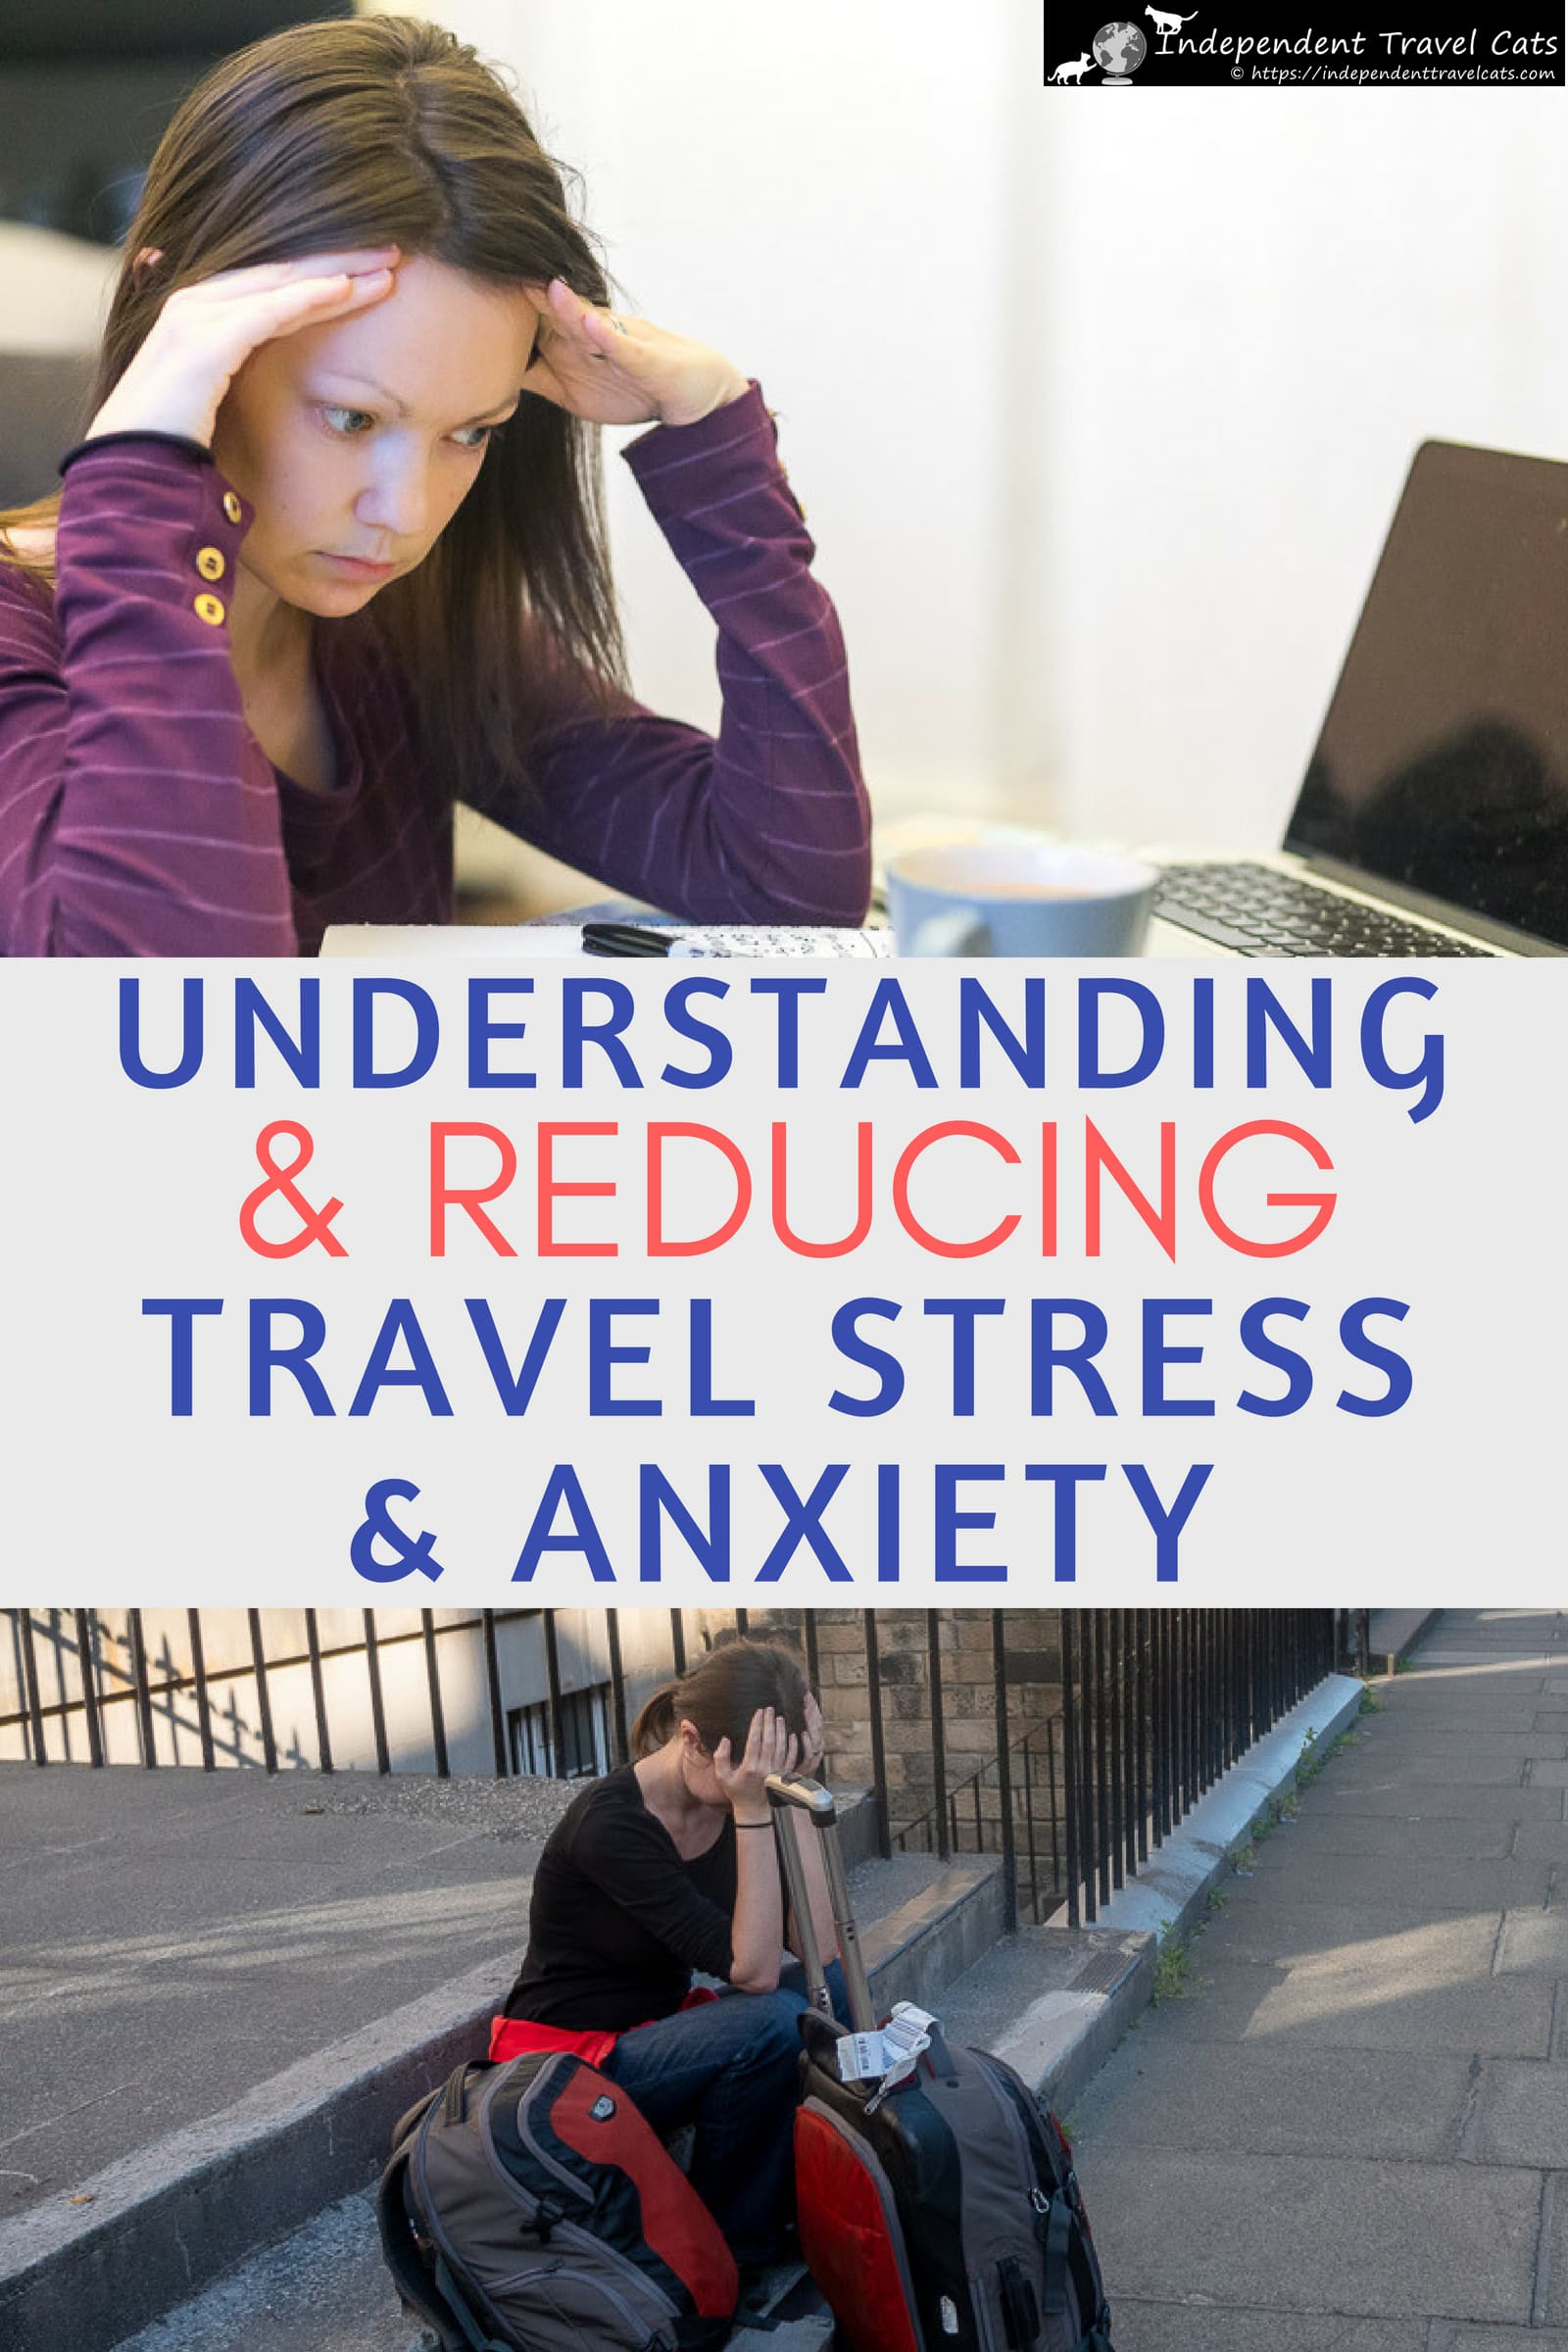 Travel stress is a feeling of mental strain and pressure related to traveling. We discuss a number of common reasons that you might be finding travel to be stressful, which might include feeling overwhelmed with travel planning, air travel, safety concerns, difficulty handling unexpected events, and financial issues. Then we provide a number of helpful tips to help you prevent or reduce travel stress and travel anxiety. #travelstress #travelanxiety #traveltips #travelplanning